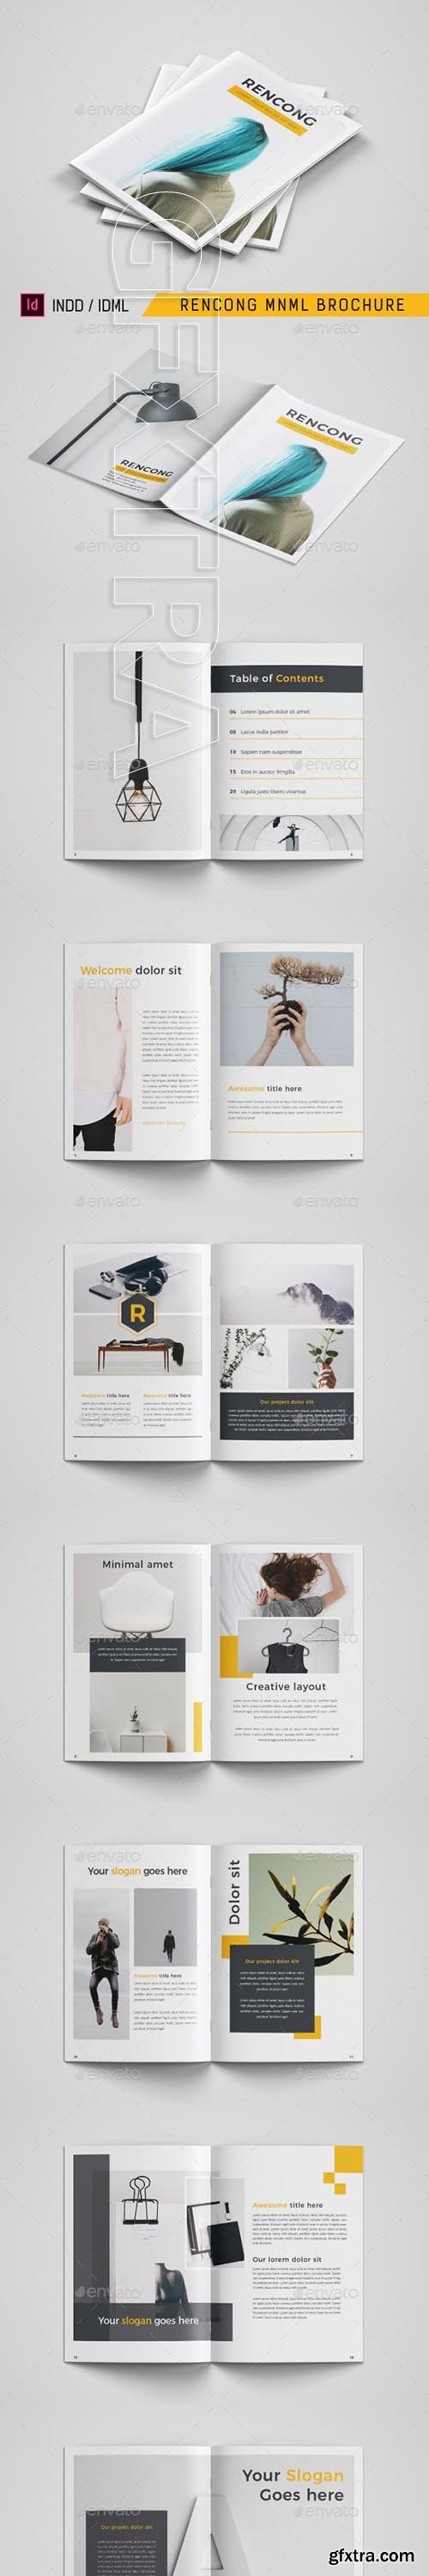 GraphicRiver - Rencong Mnml Brochure 23800903